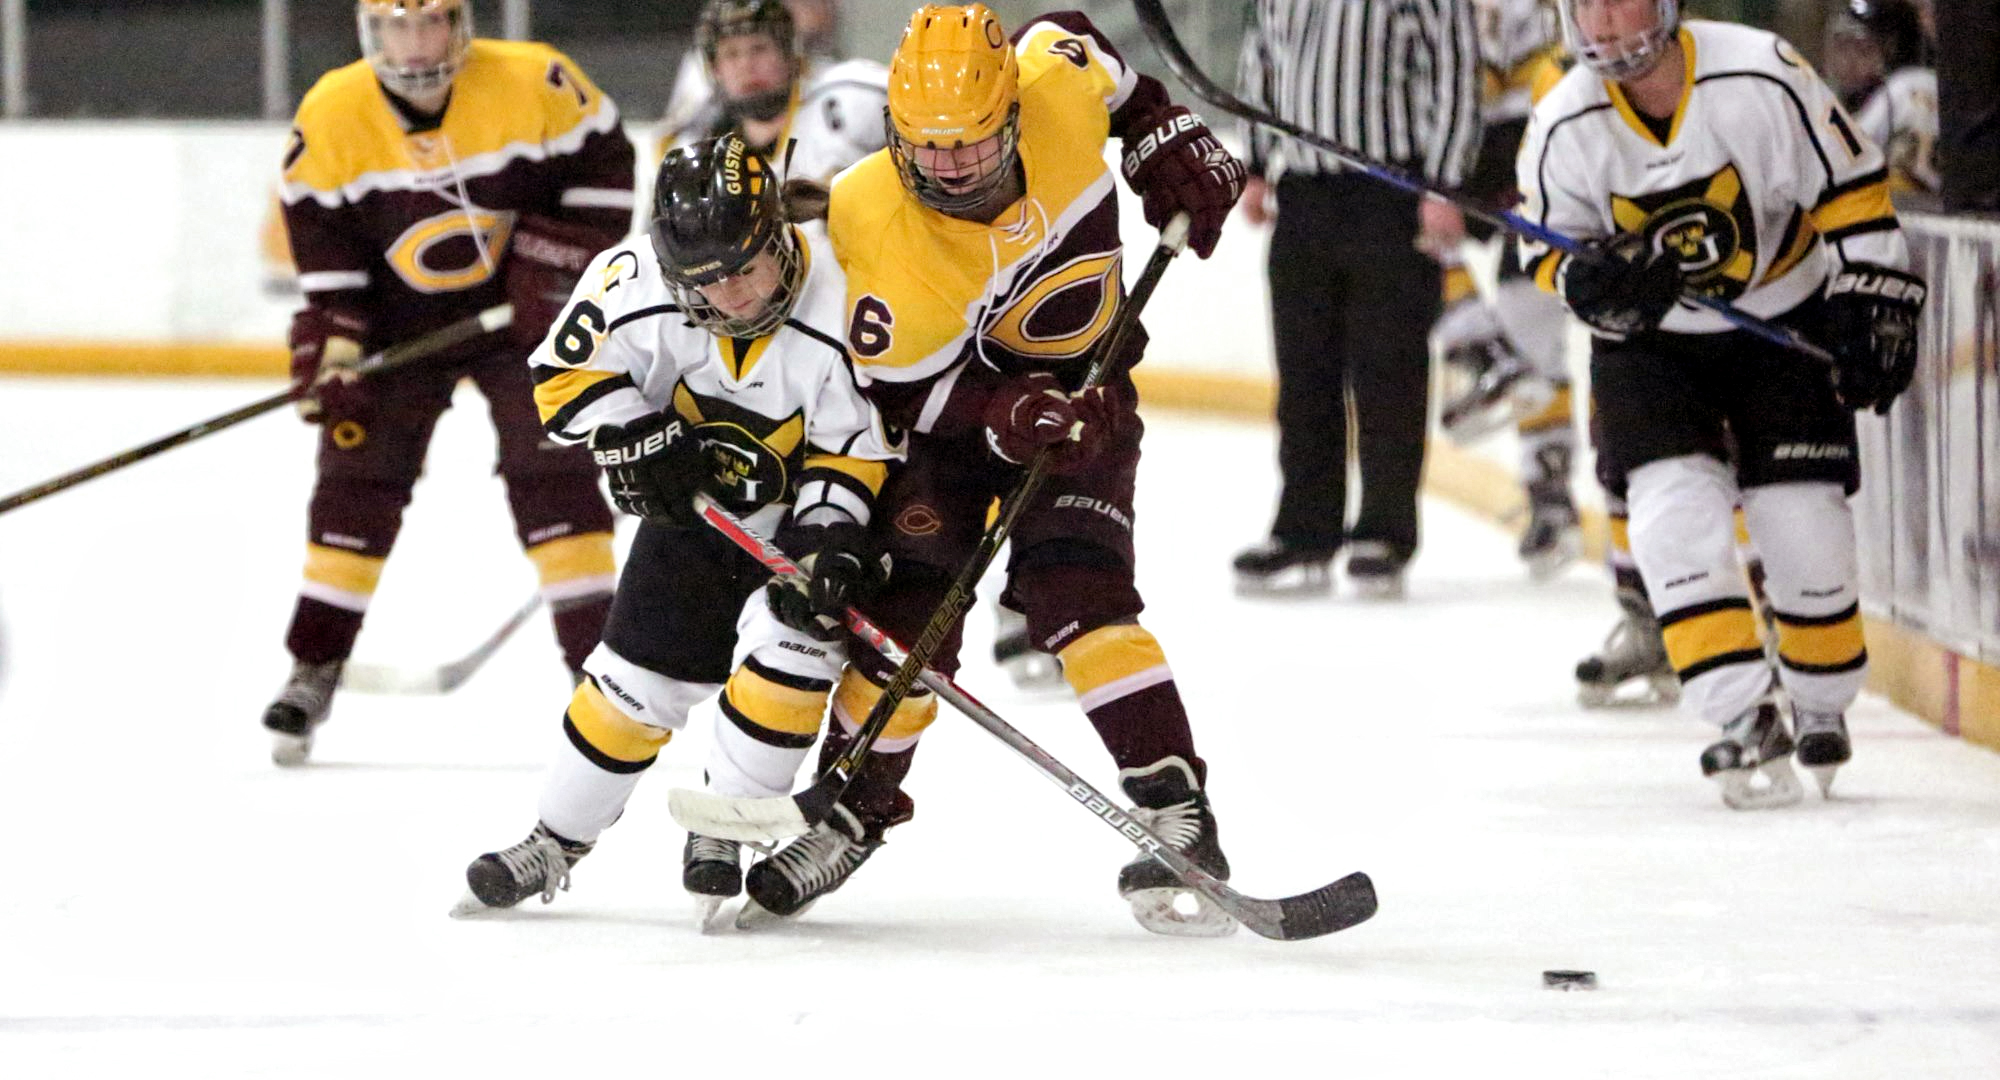 Senior Chelsey Petrich battles with a Gustavus player for the puck during the Cobbers' series opener in St. Peter. (Photo courtesy of Roisen Granlund - Gustavus sports information dept.)